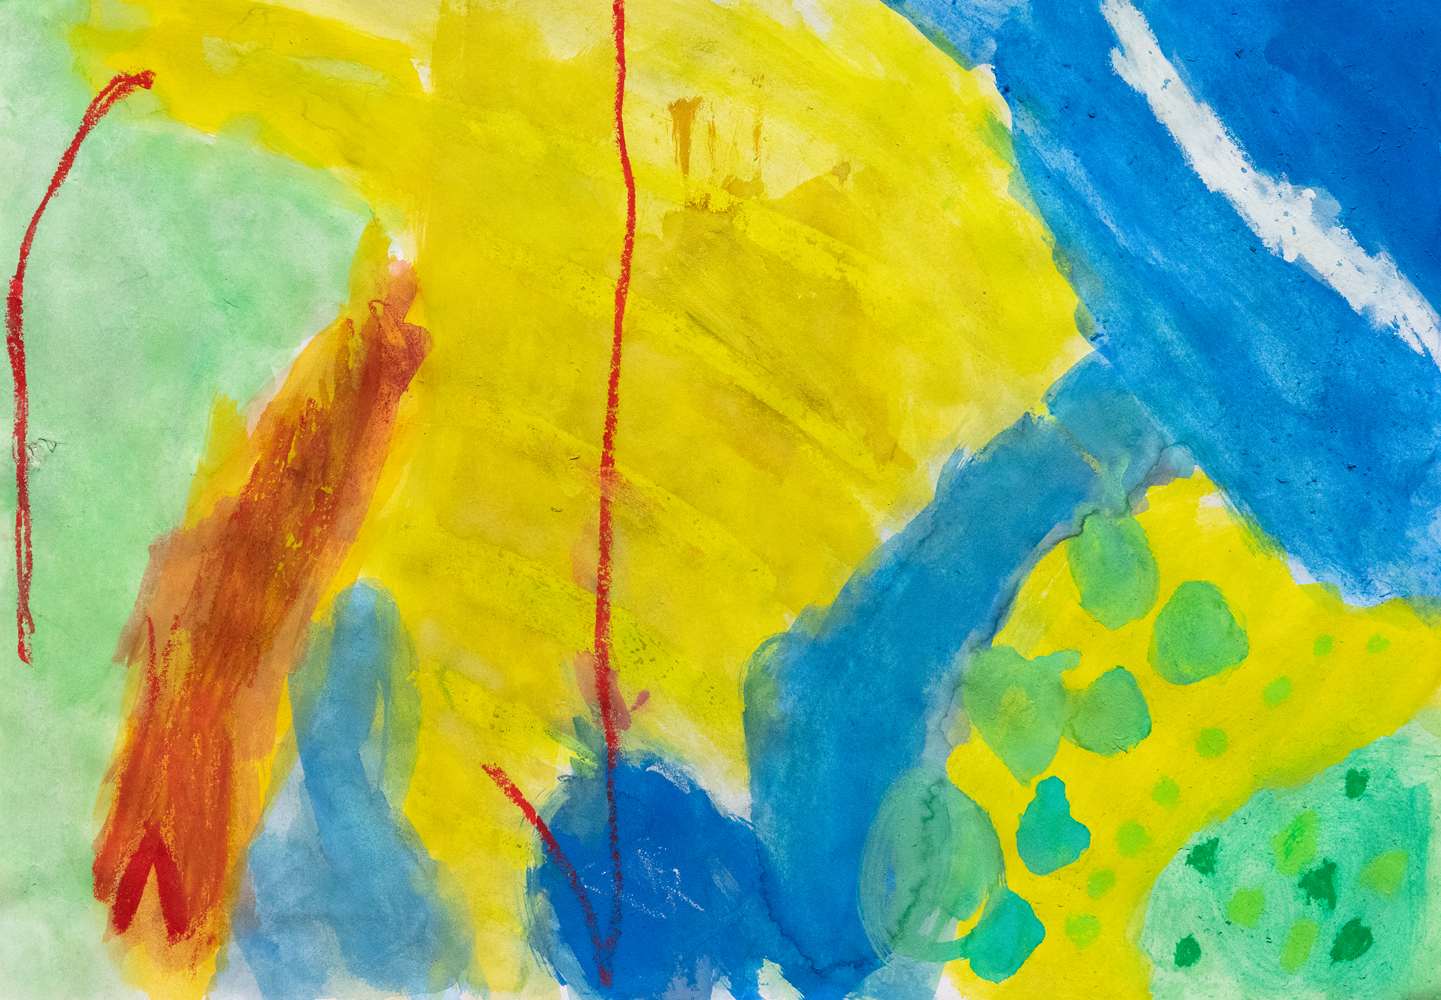 02. Claire Williams, 'Masterpiece of mystery', watercolour, crayon, Year 2, St Patrick's School, Walcha